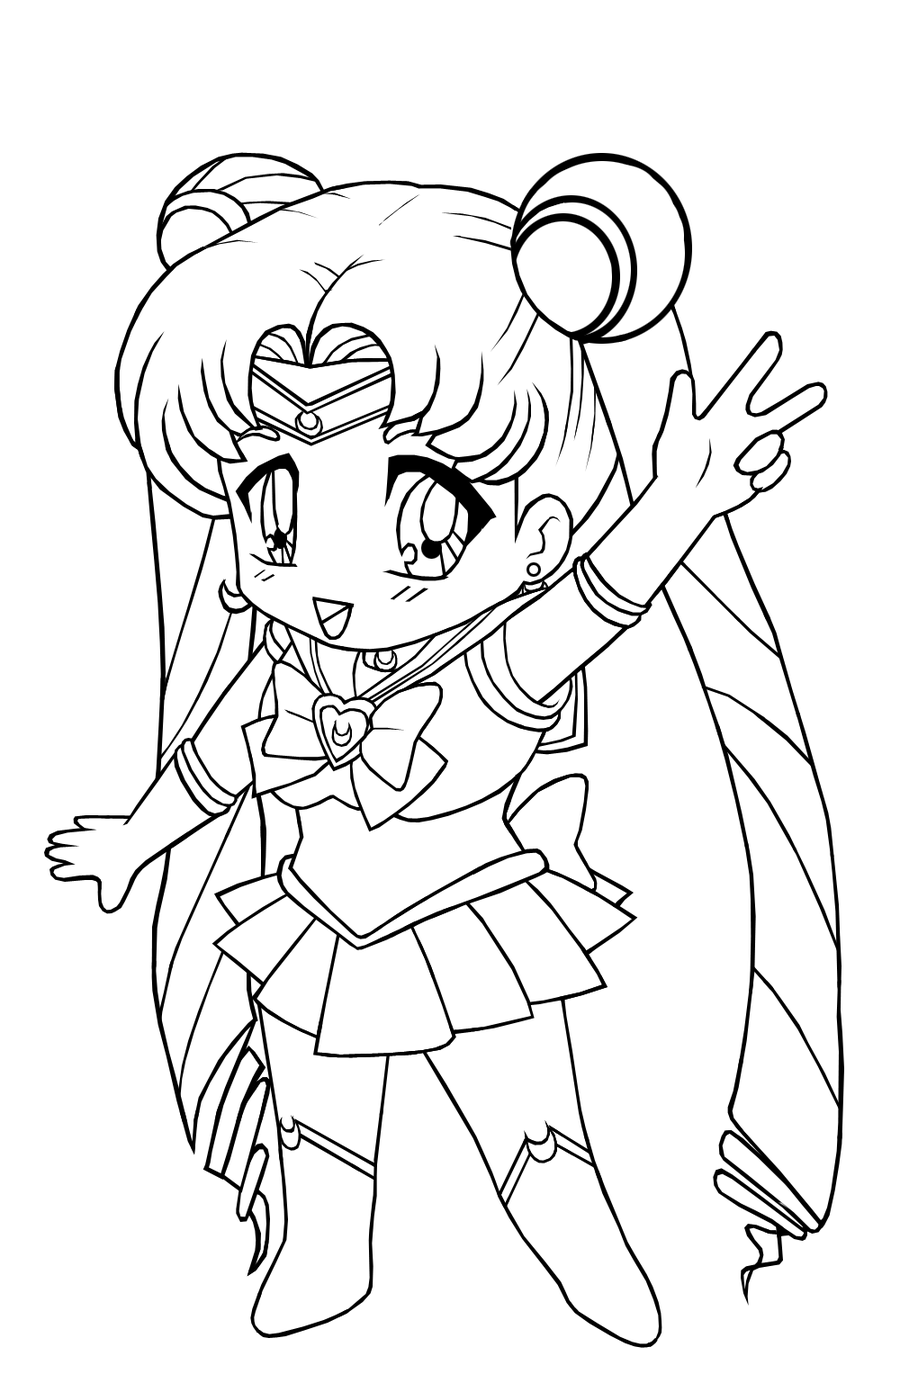 Anime Girls Coloring Page Coloring Pages For All Ages